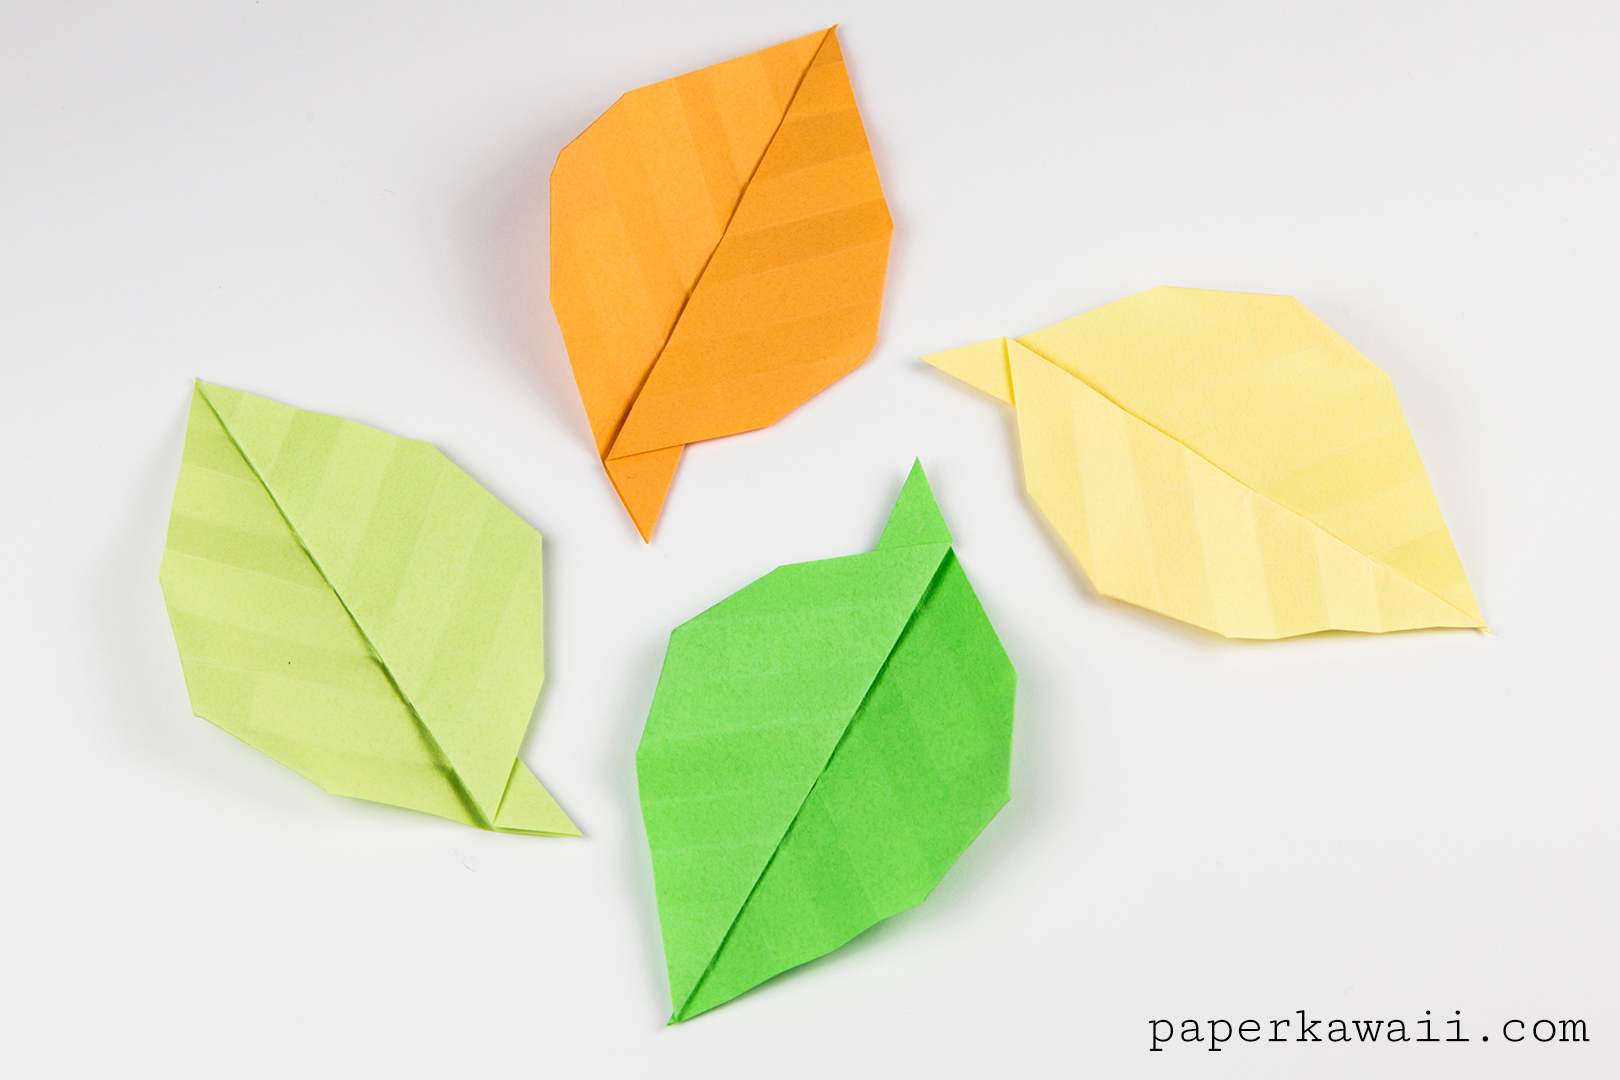 Simple Origami Leaf Instructions - Video Tutorial - Paper ... - photo#28